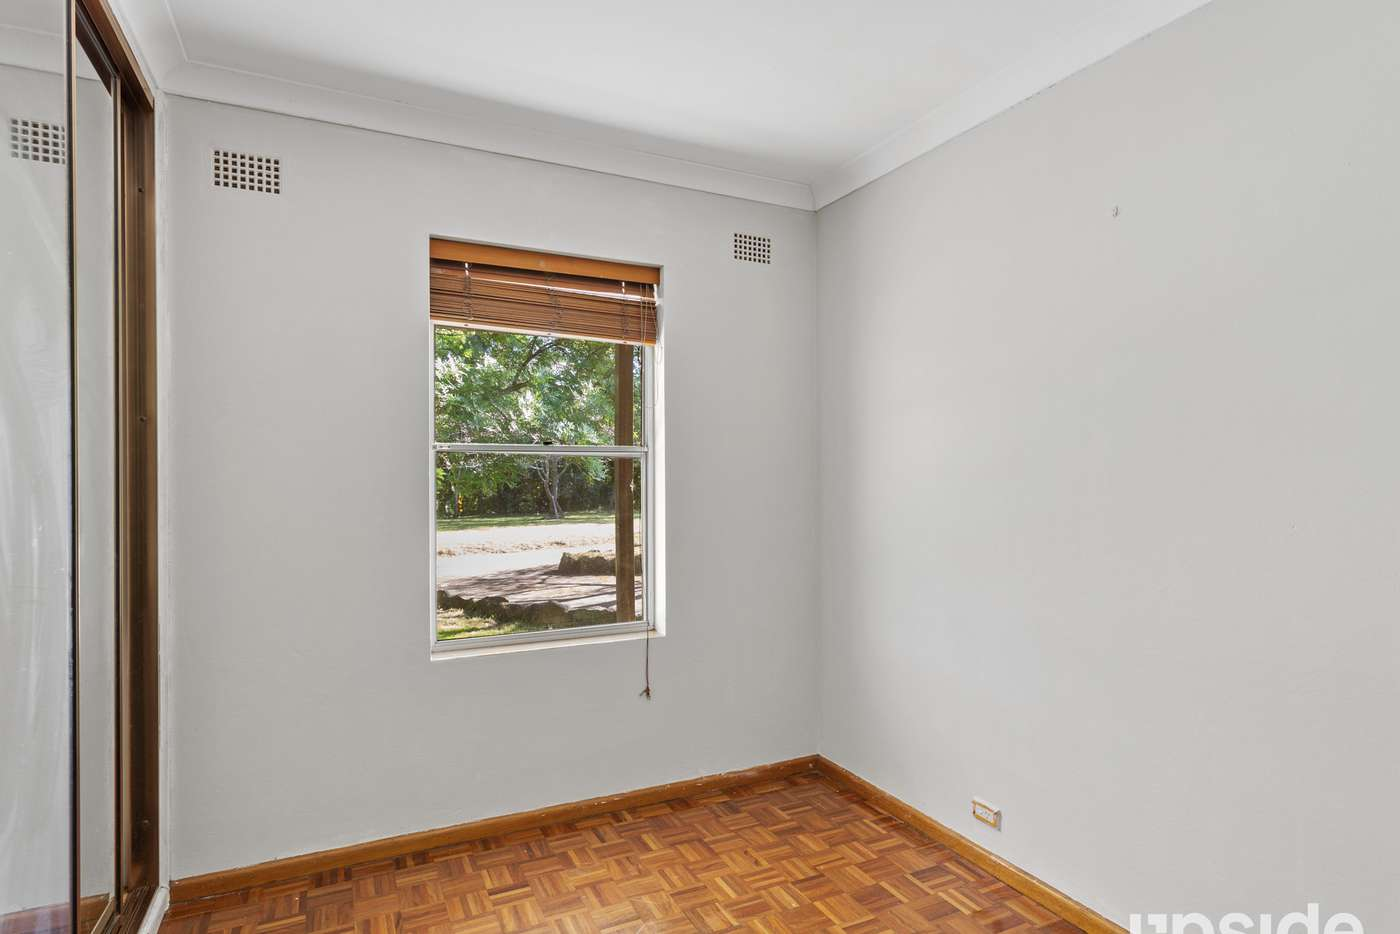 Sixth view of Homely house listing, 1049 Old Northern Road, Dural NSW 2158